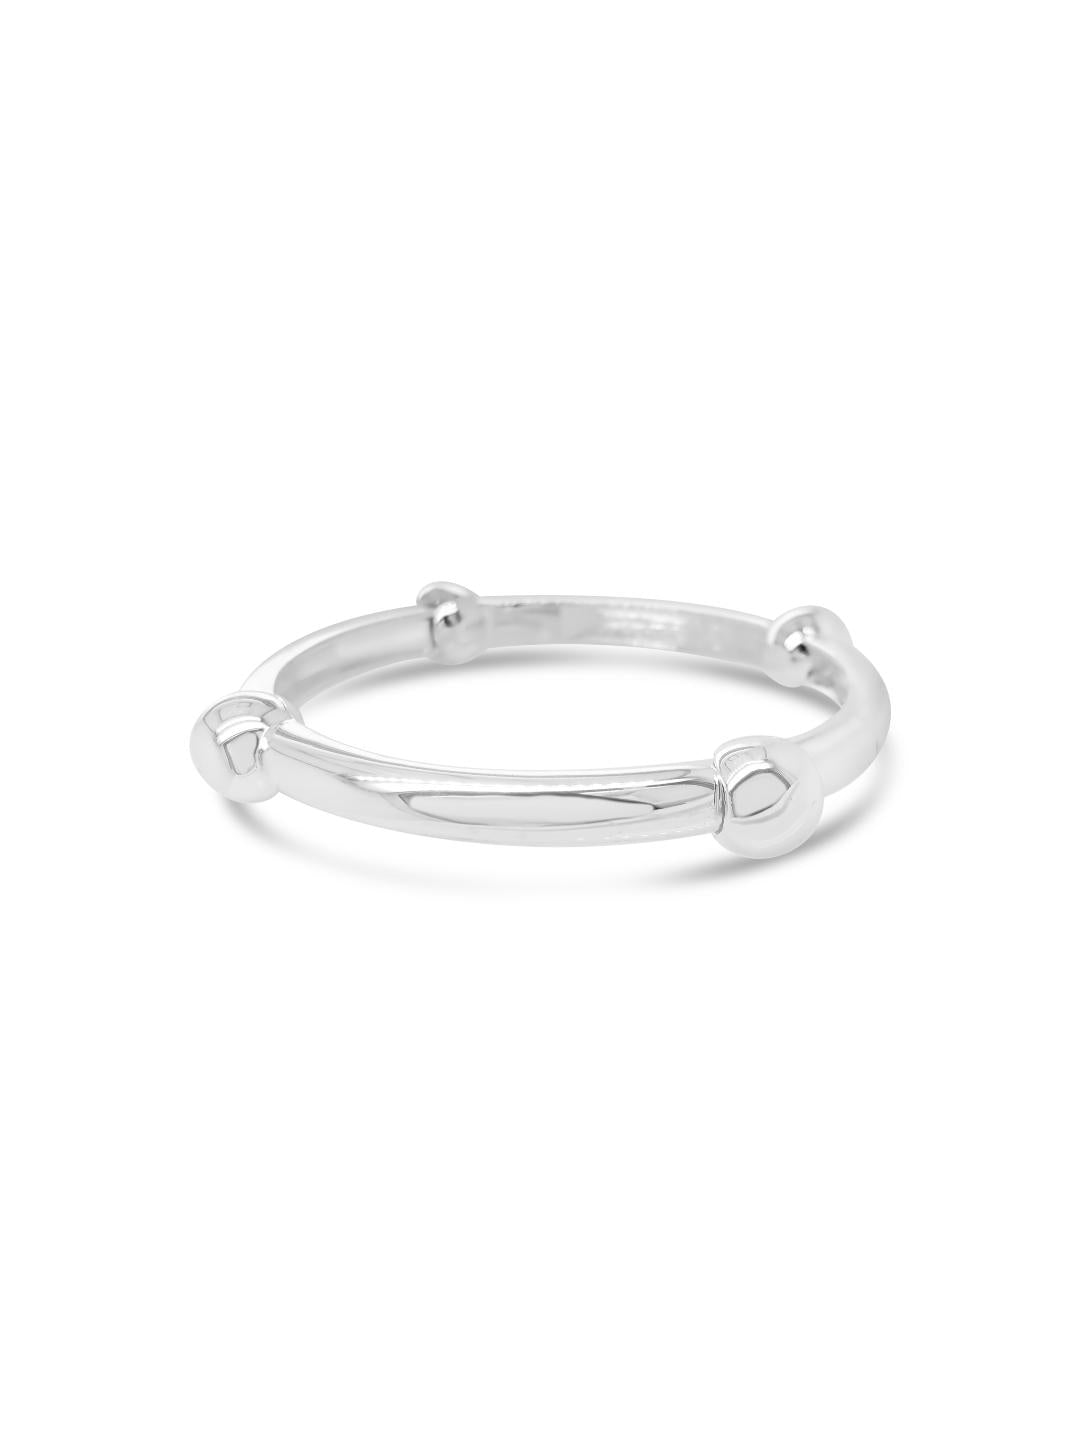 Absolute Jewellery Silver Bangle-Sale